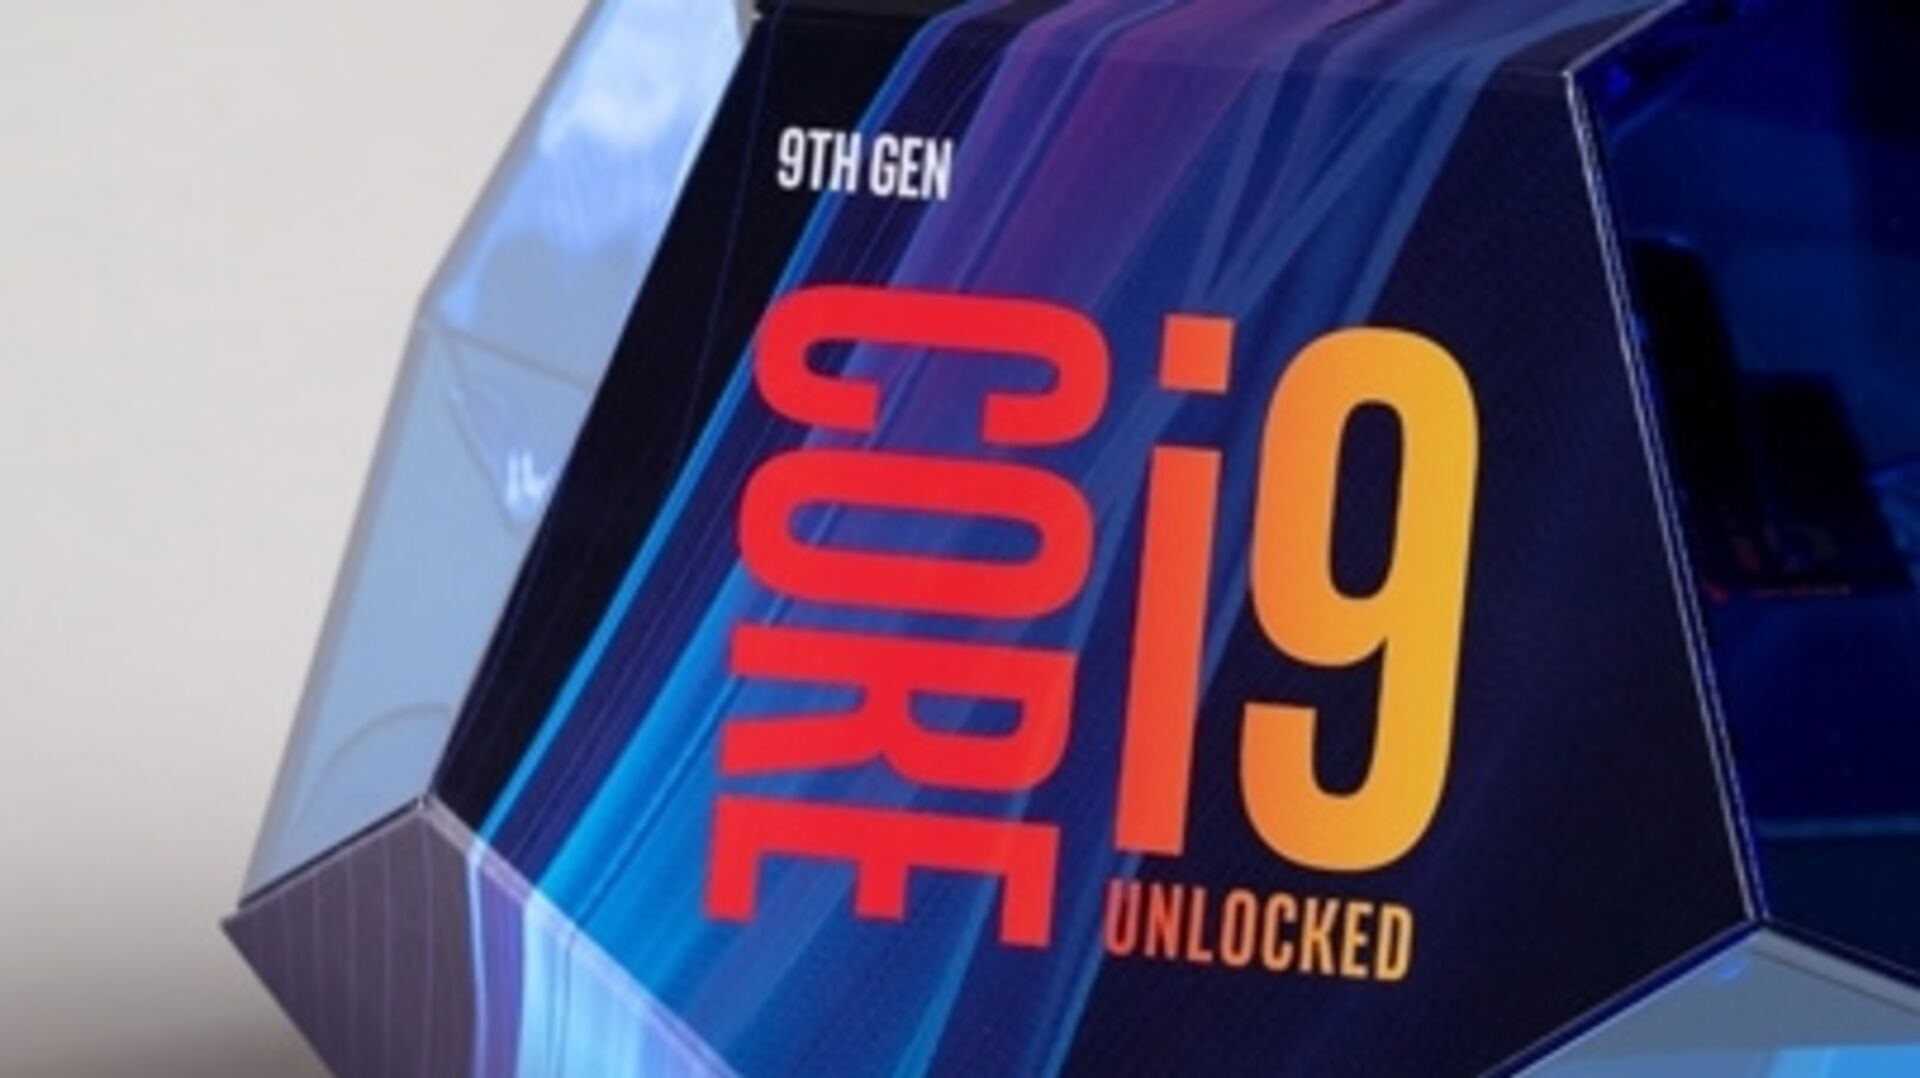 Intel Core i9 9900K review: the fastest gaming CPU money can buy